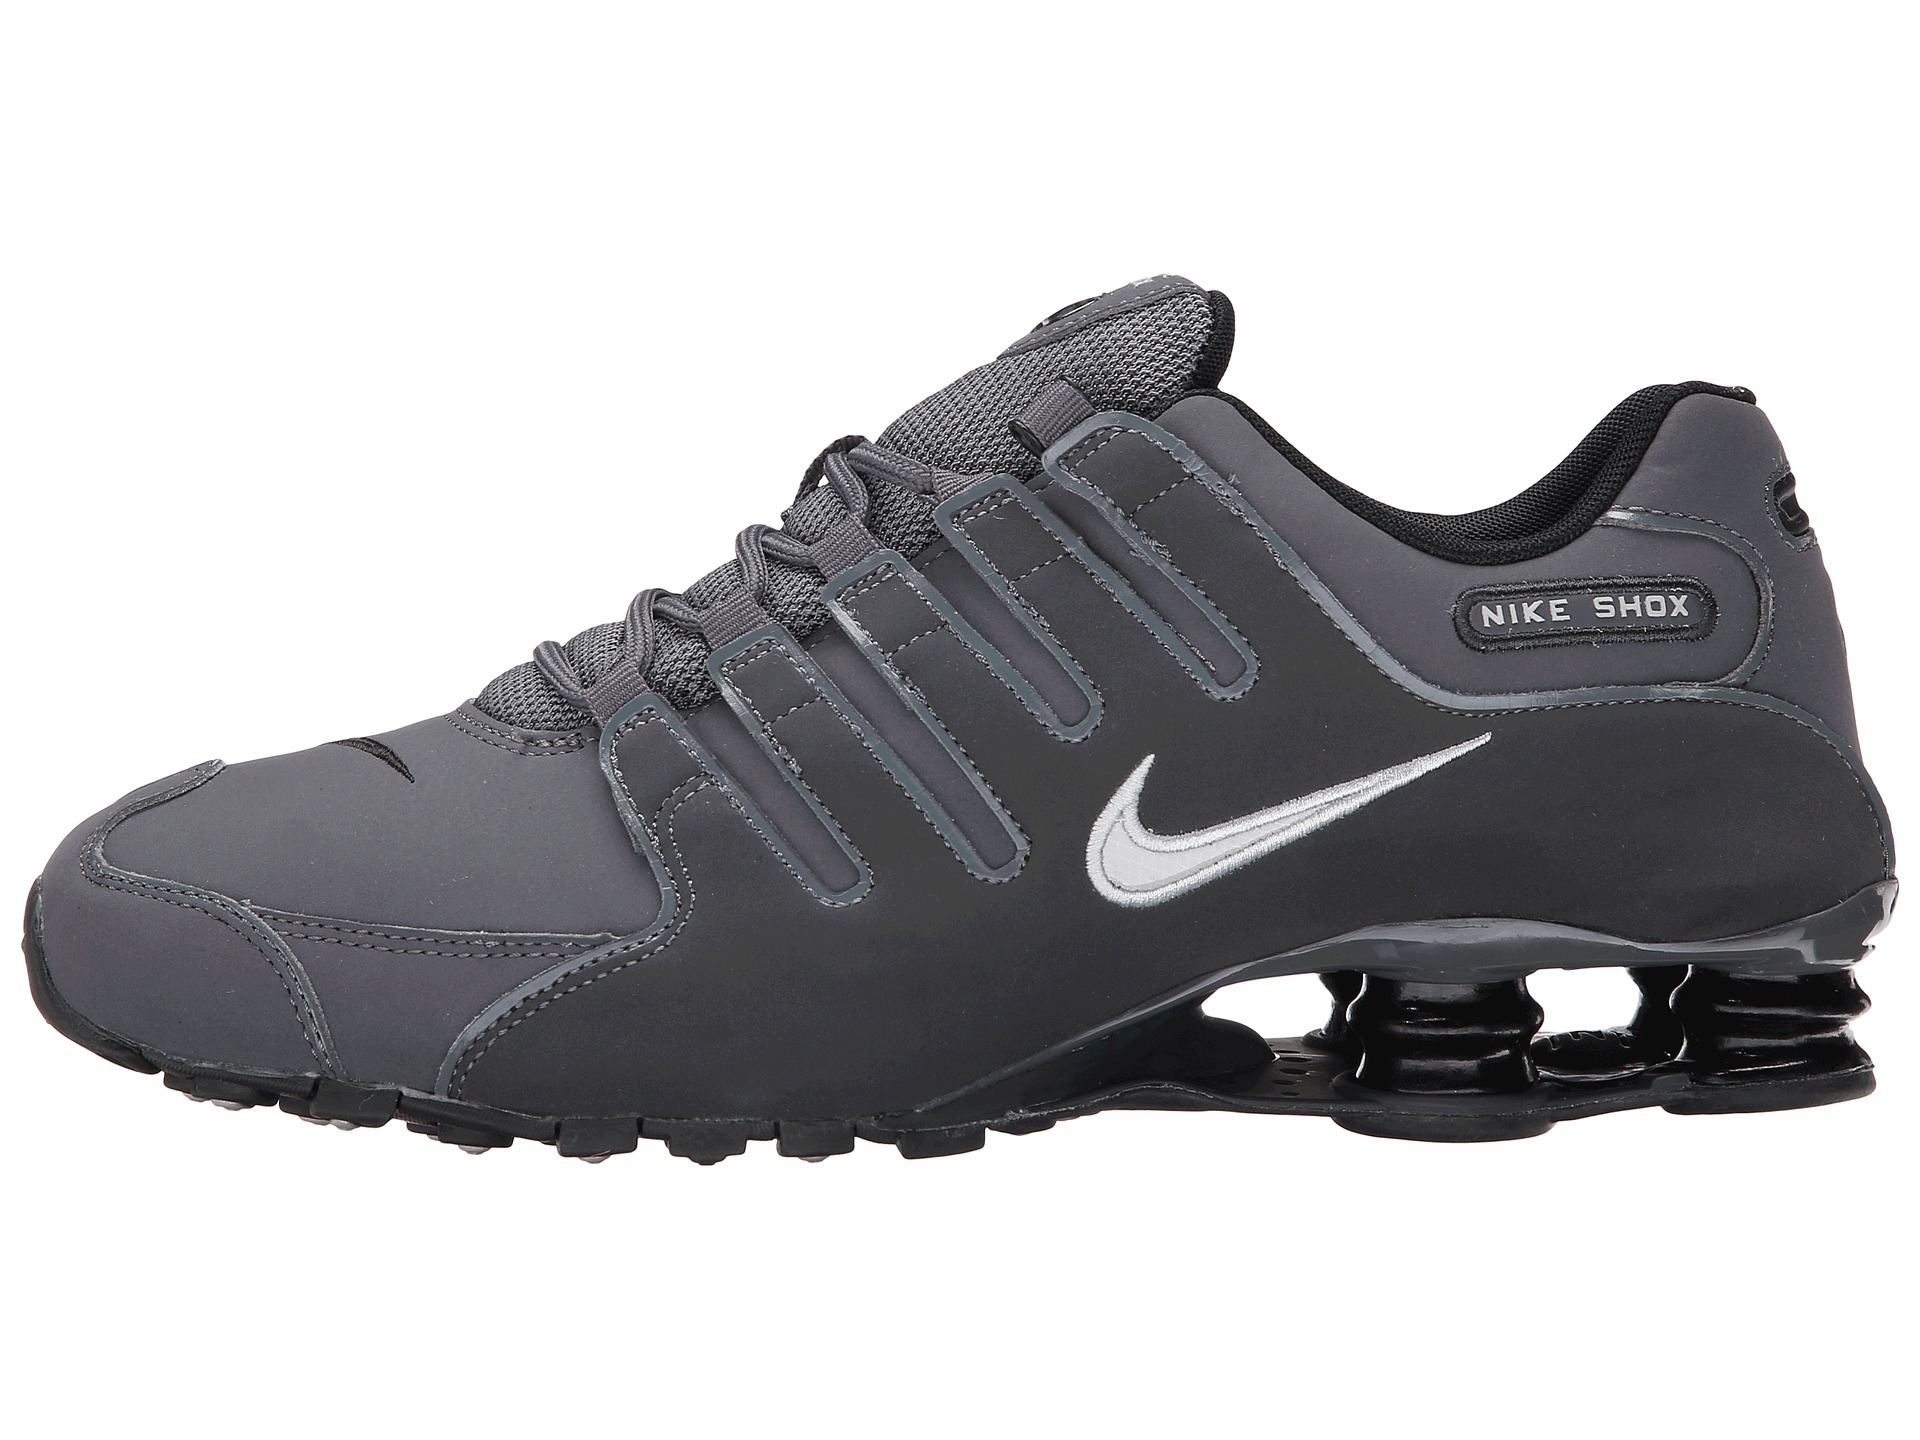 Nike shox – Get Ready to Hit the Pavements Hard!